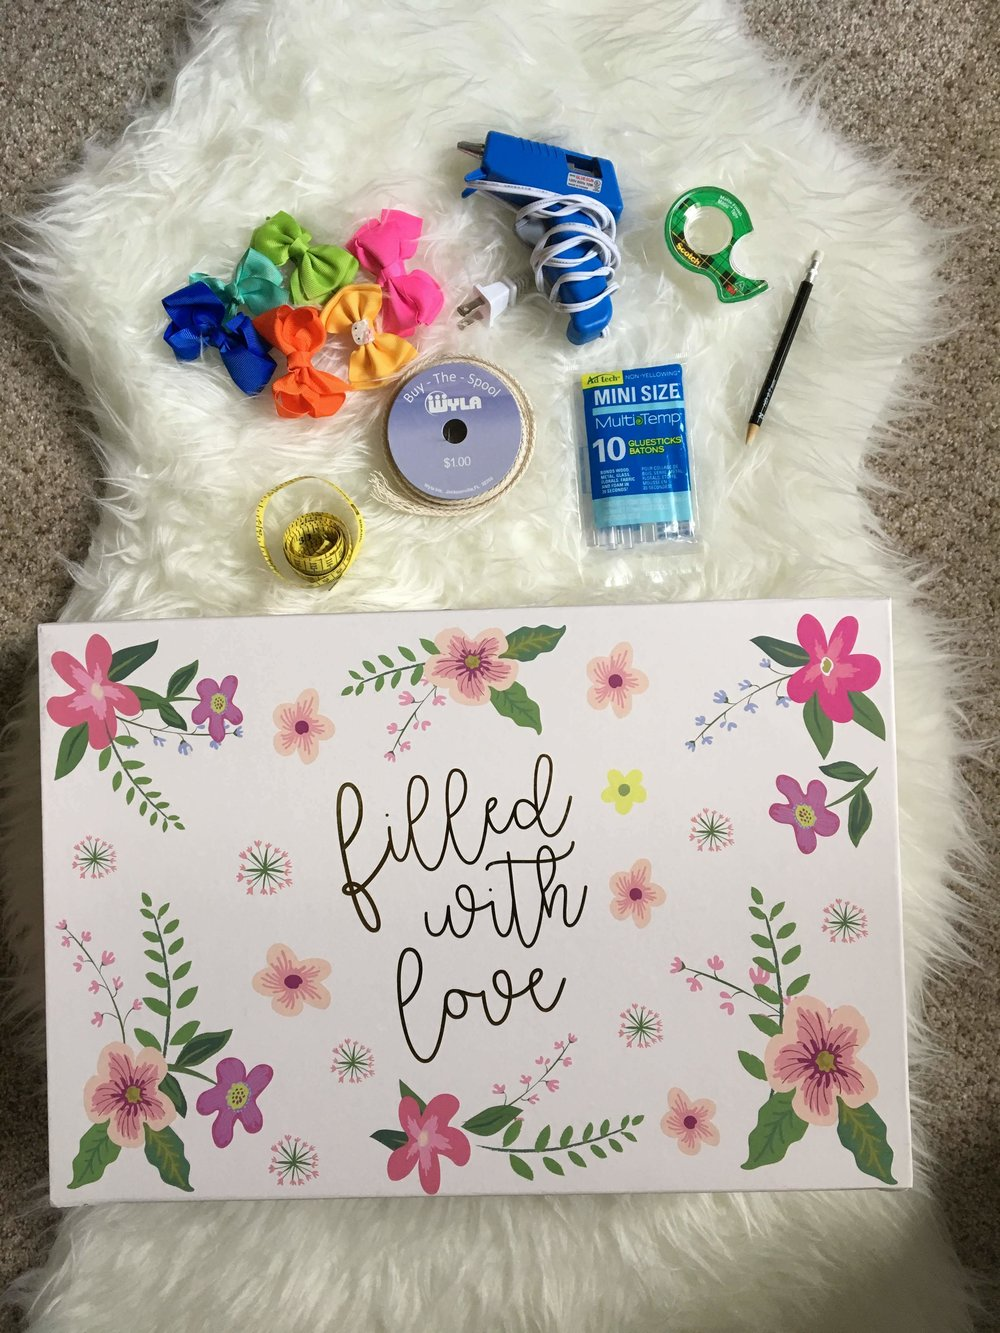 You will need a  keepsake/storage box, spool of ribbon, glue gun, glue sticks, transparent tape, pencil, measuring tape, and scissors  (not shown), and  bows  of course!